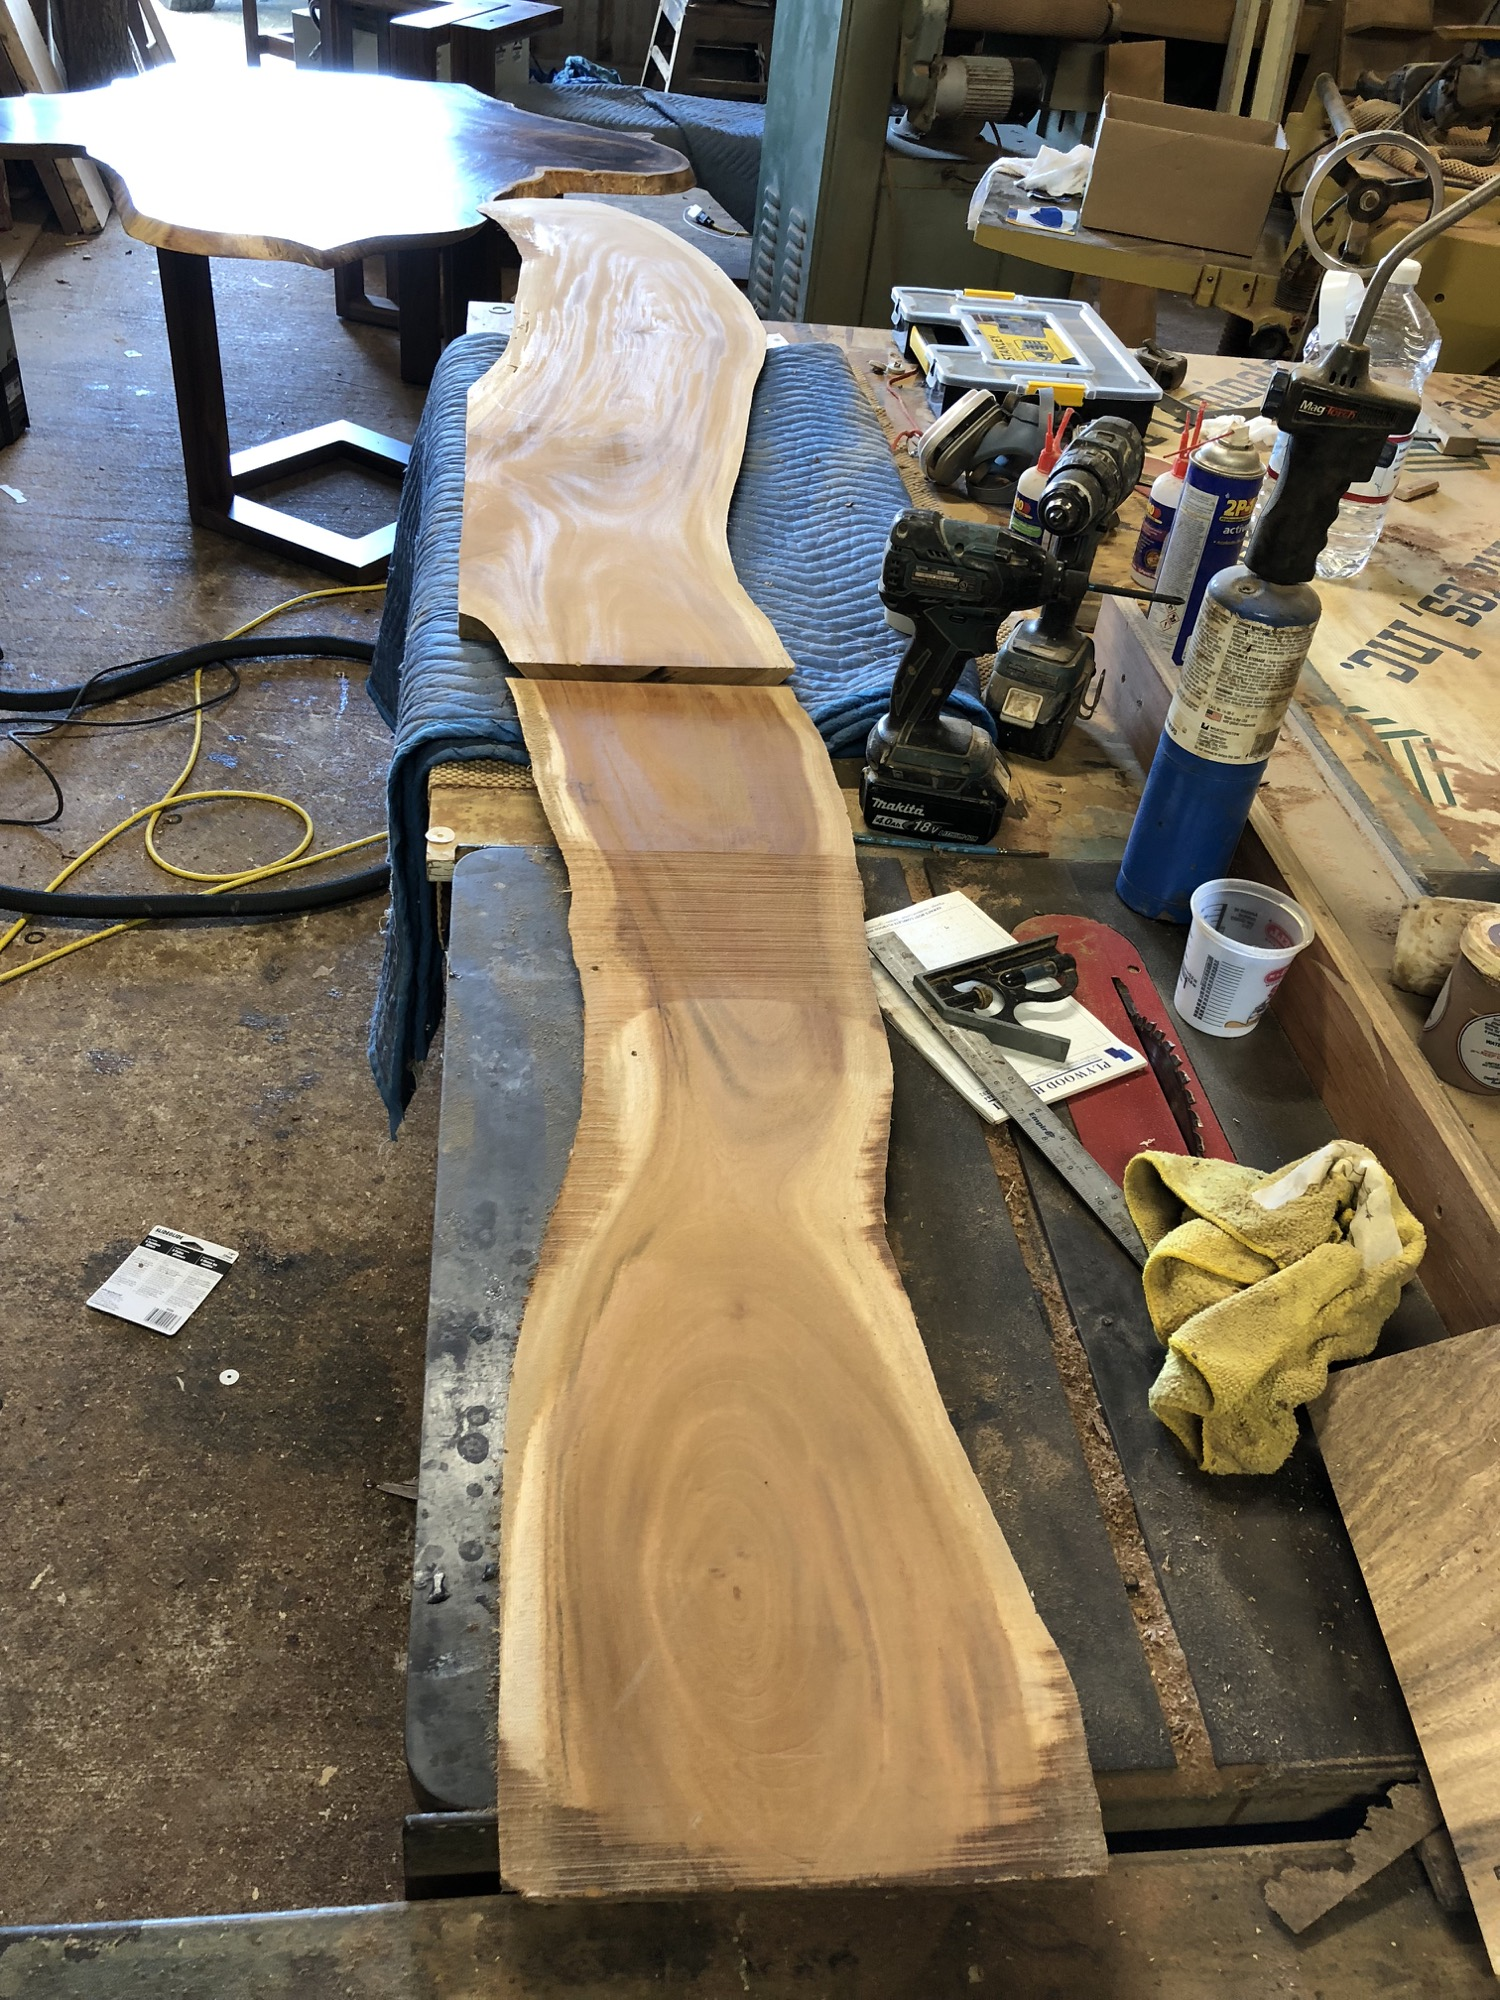 Cuban mahogany slab, cut to separate the top and the leg. This cut was made with a Dewalt track saw, which allows a perfectly straight cut.